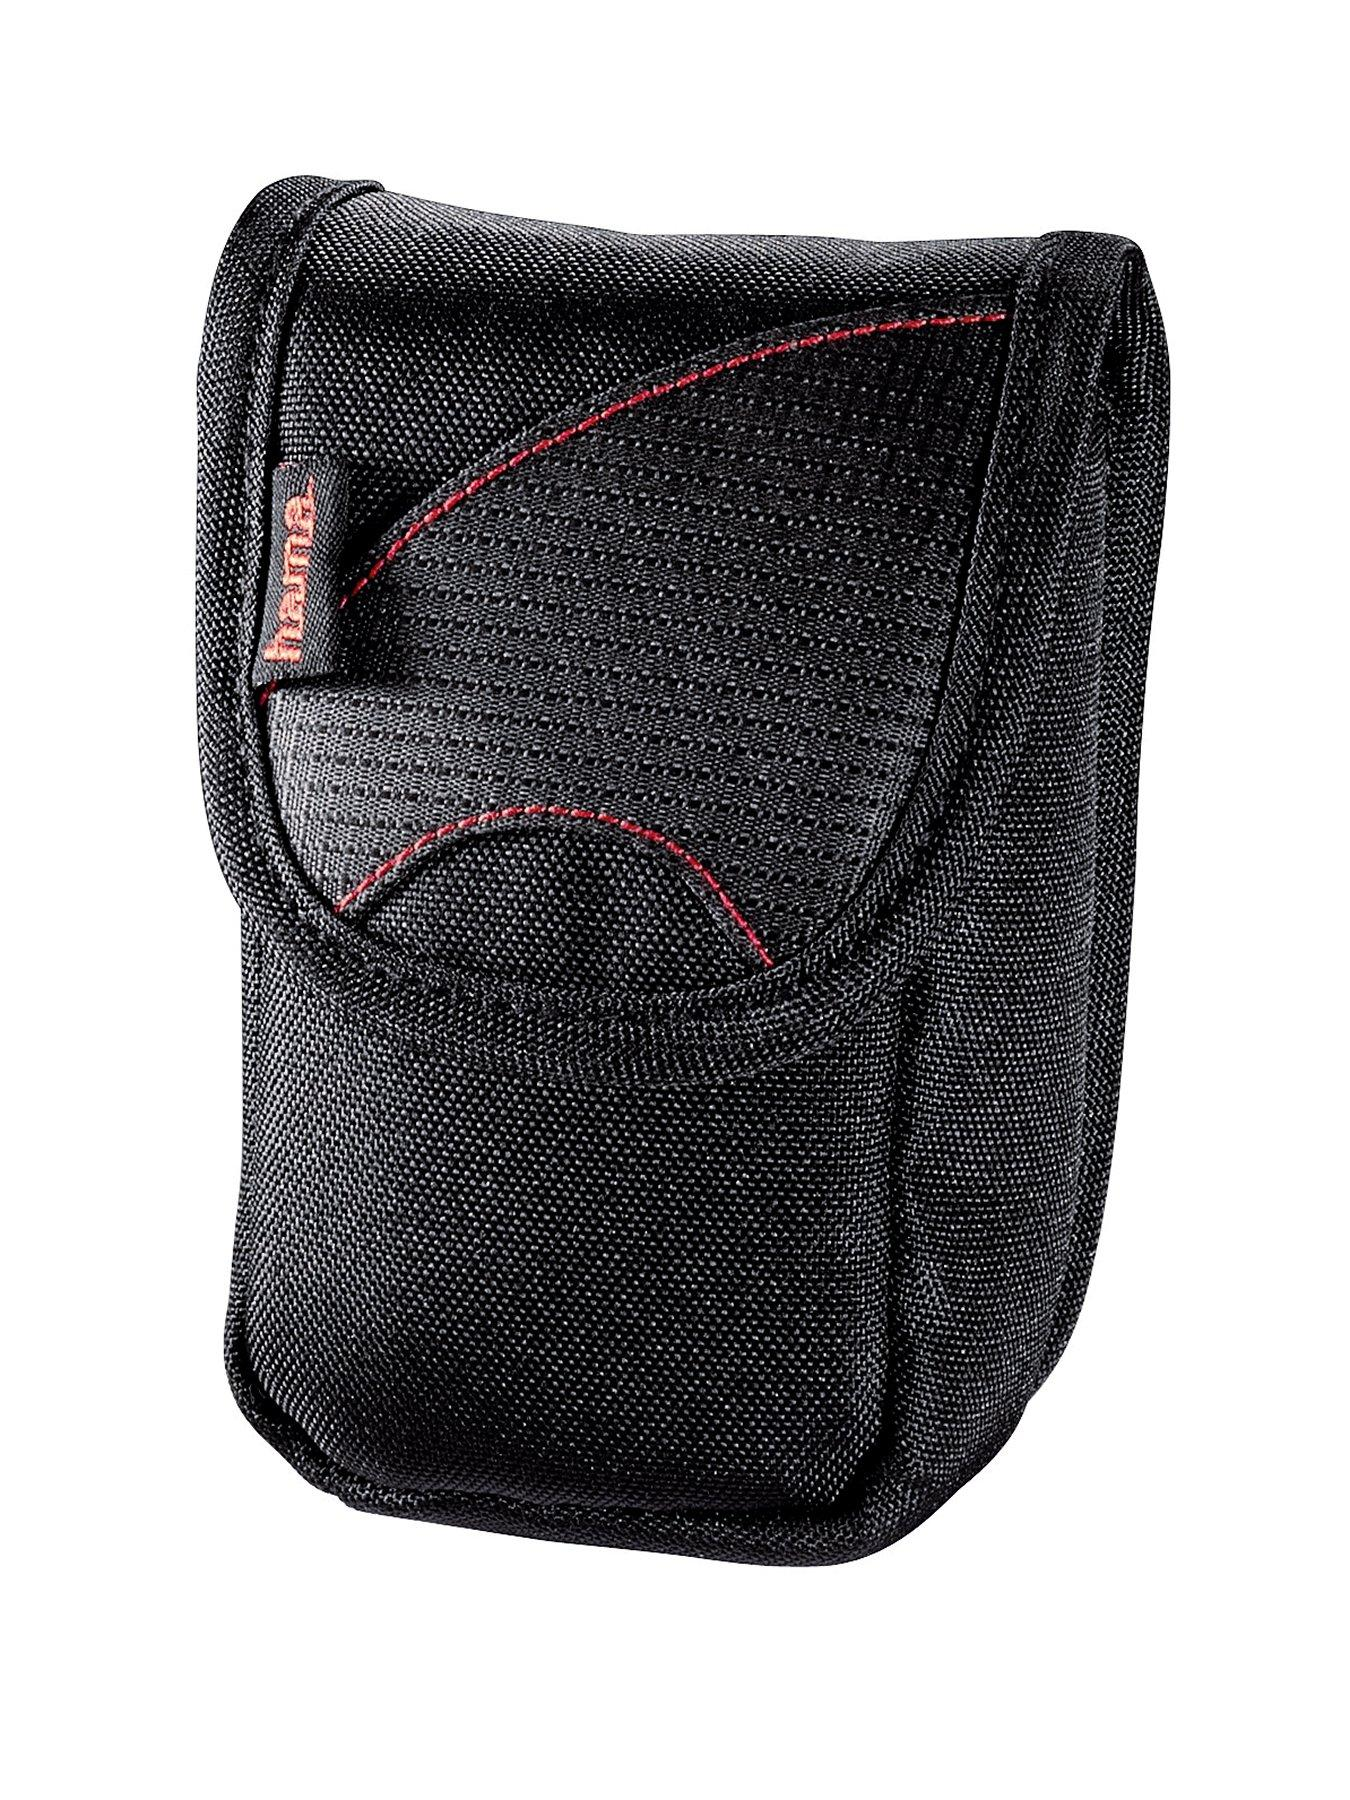 HAMA Astana 60L Camera Bag Black